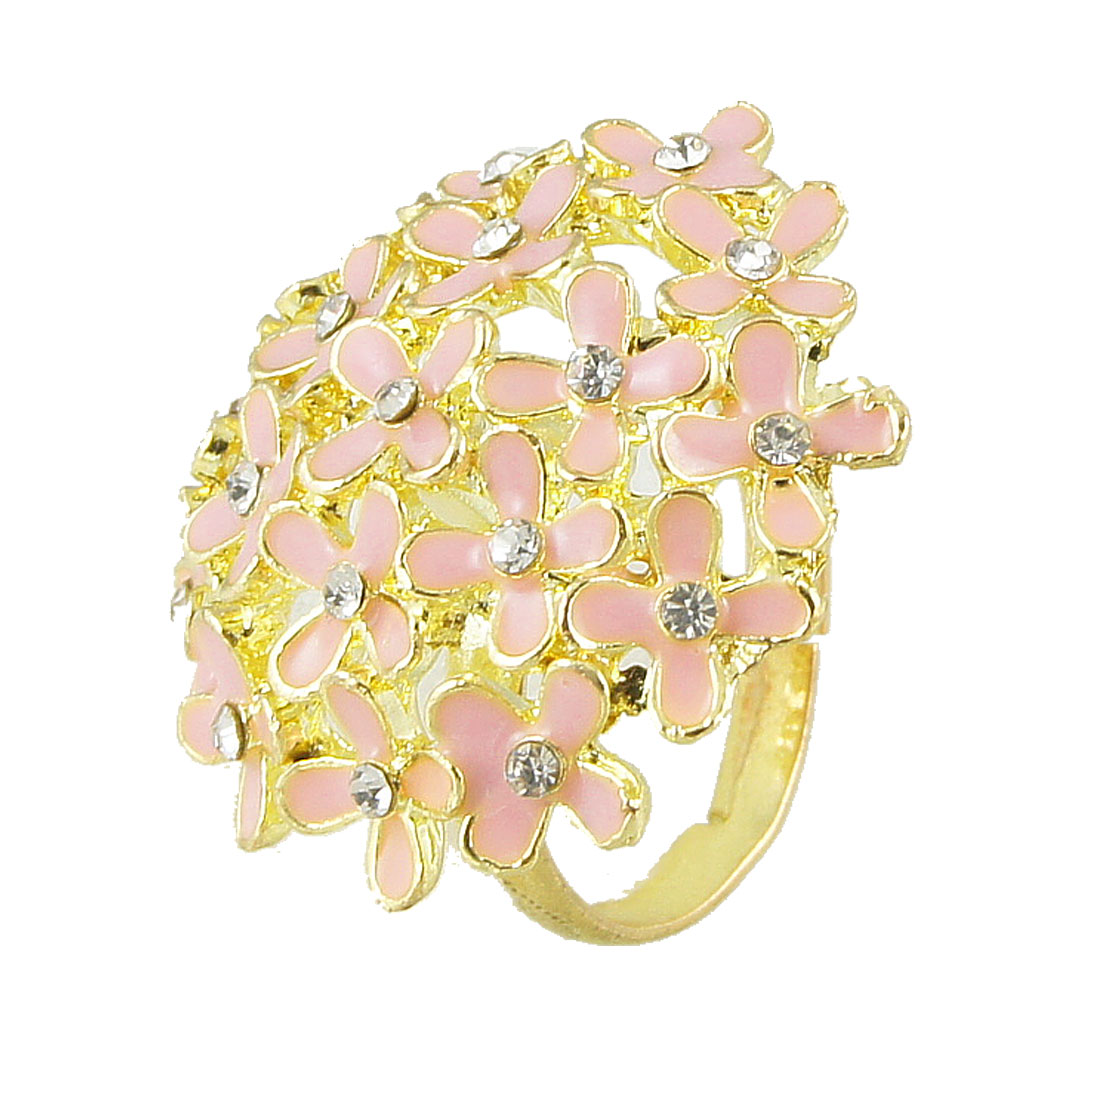 Lady Rhinestone Inlaid Light Pink Flower Cluster Gold Tone Finger Ring US 6 1/2